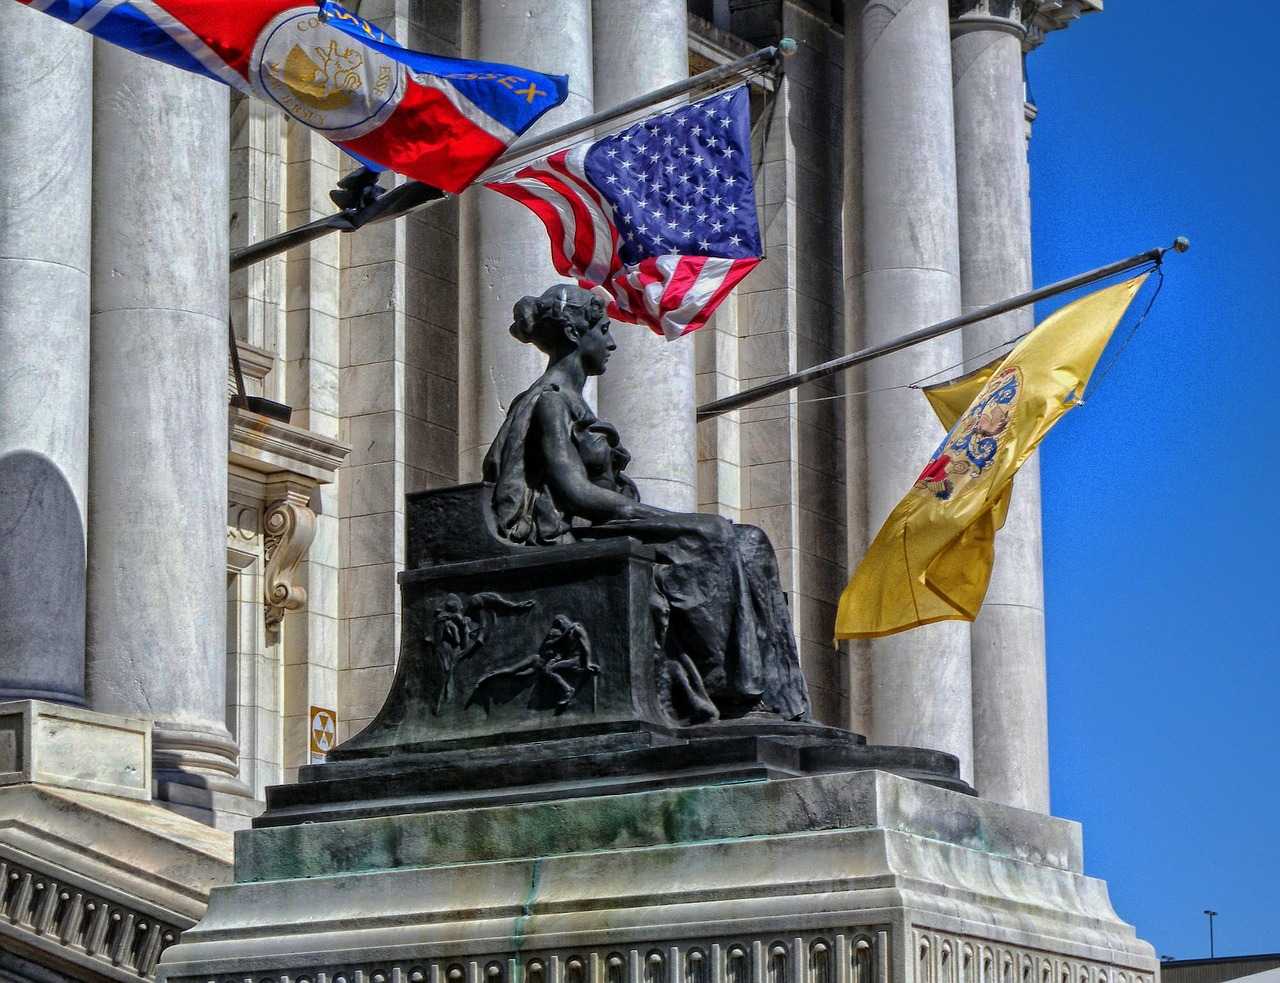 New Jersey enacts law to protect judges' personal information from public disclosure